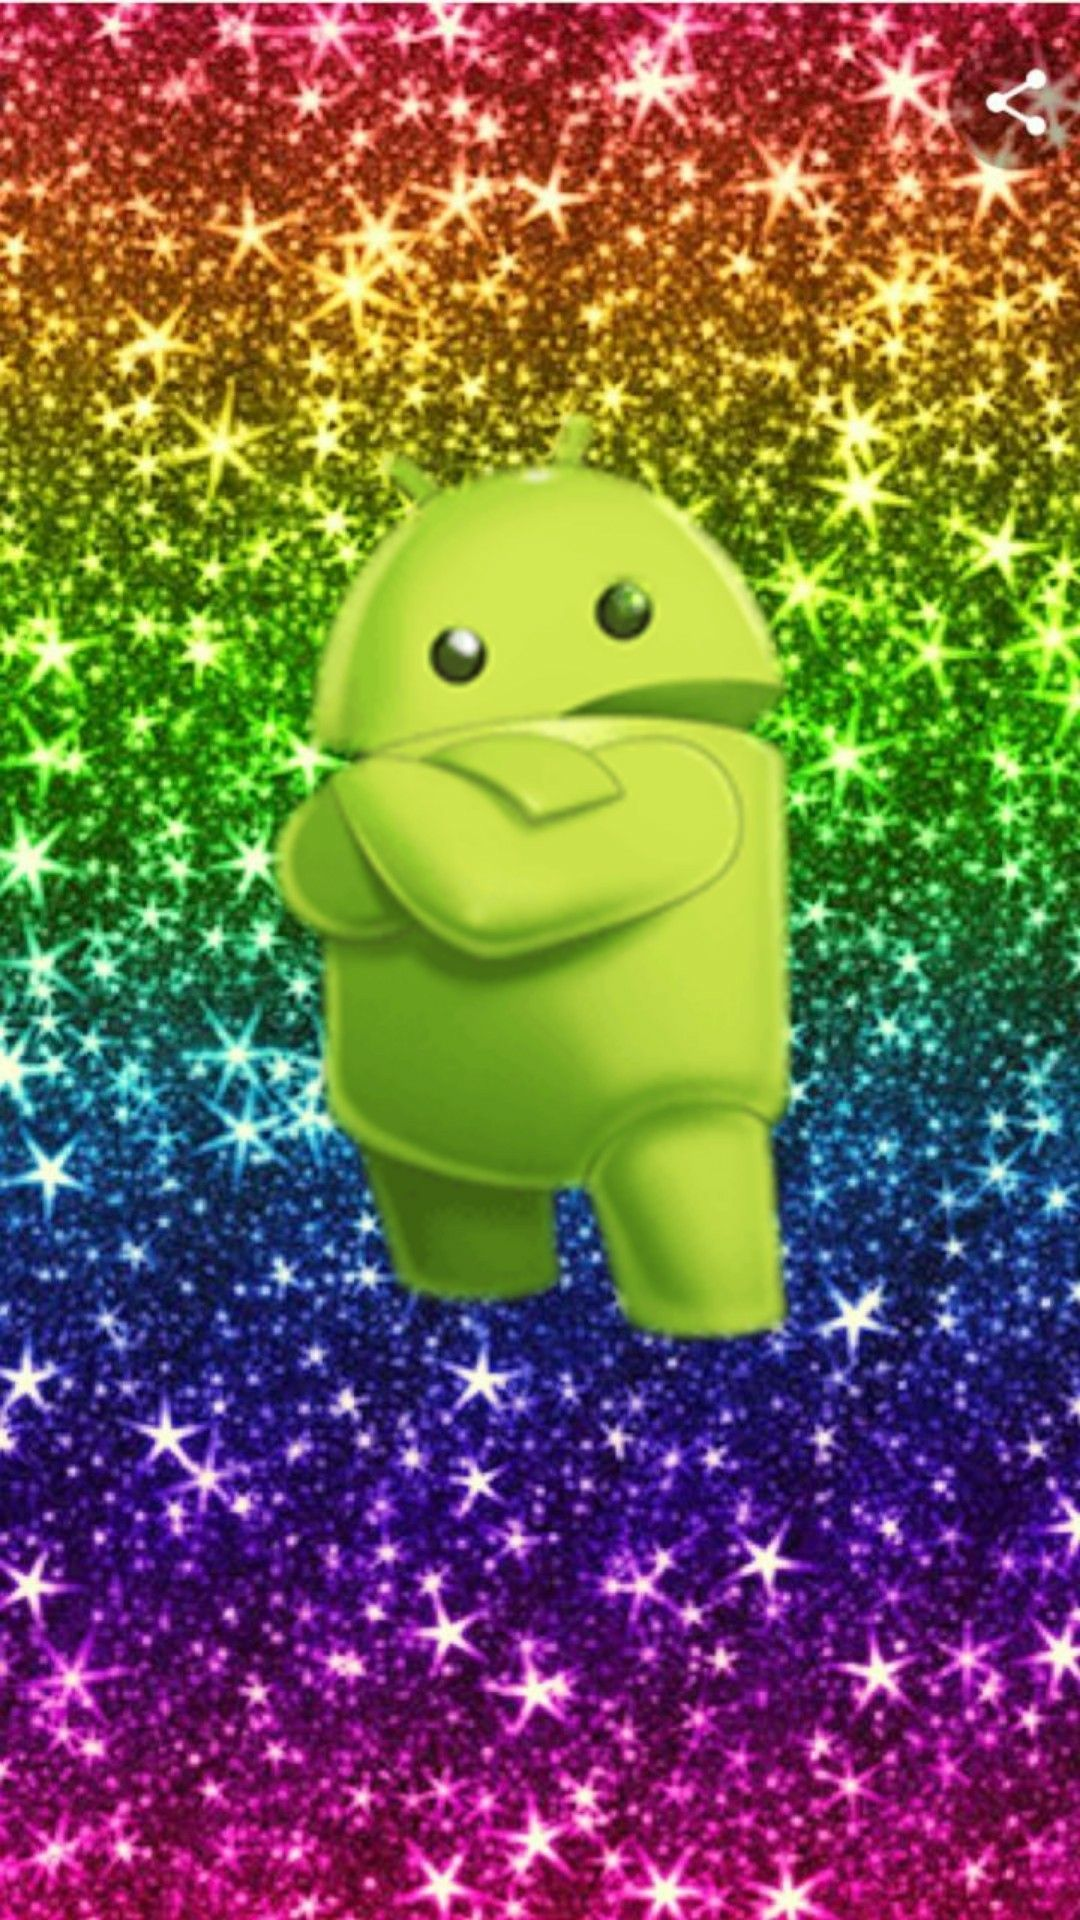 Android Wallpaper I Created Android Wallpaper Wallpaper Piggy Bank